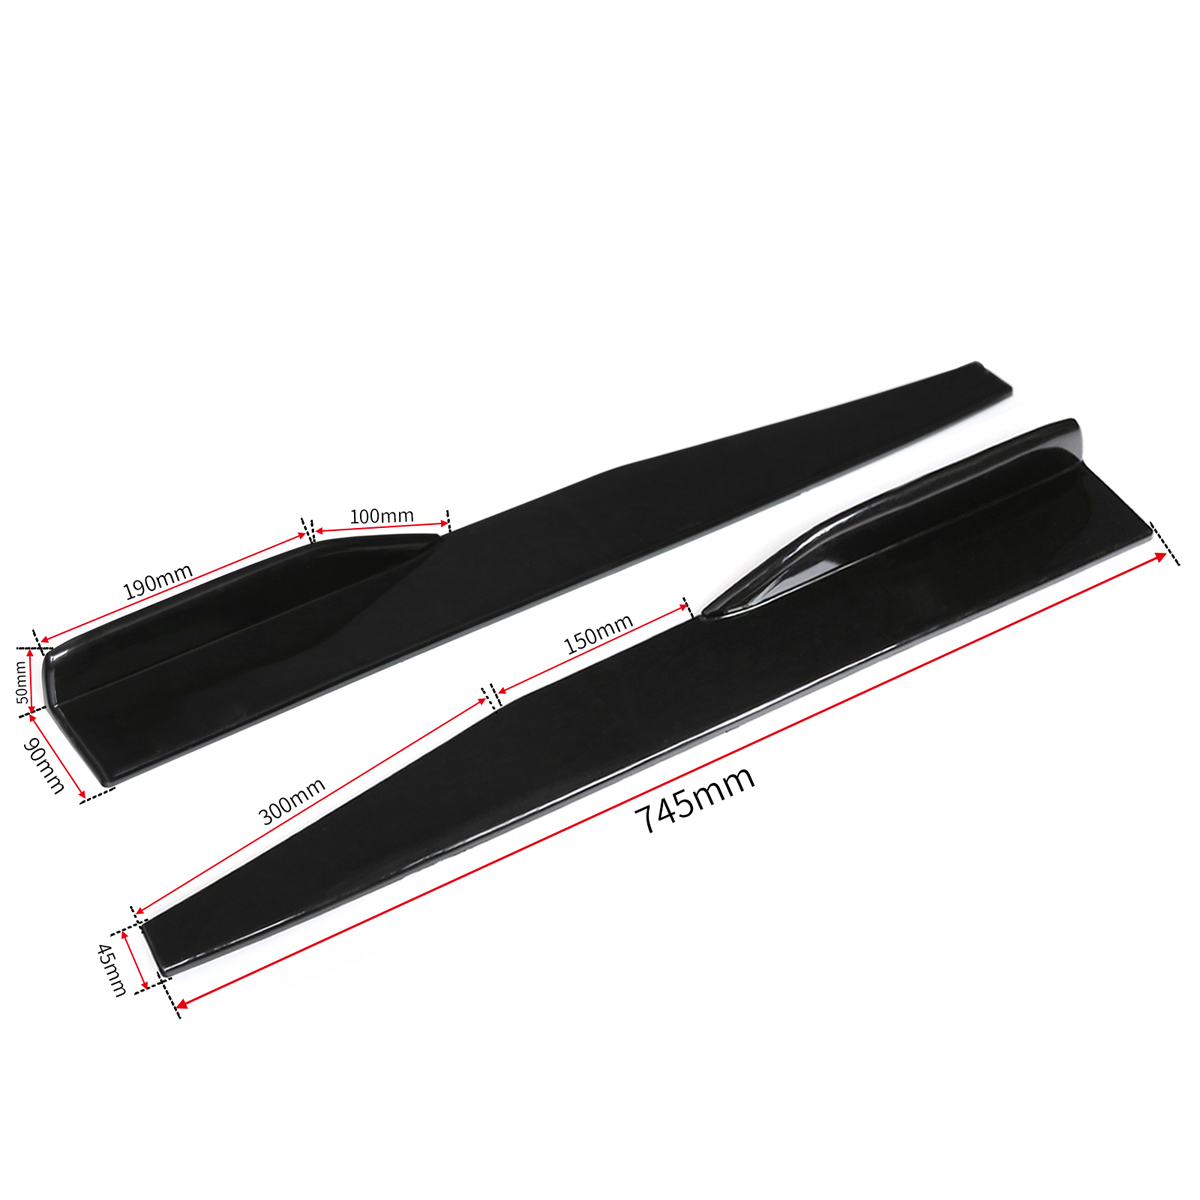 Black Car Side Skirt Door Edge Protector Winglet Wings Canard Diffuser Modified Universal